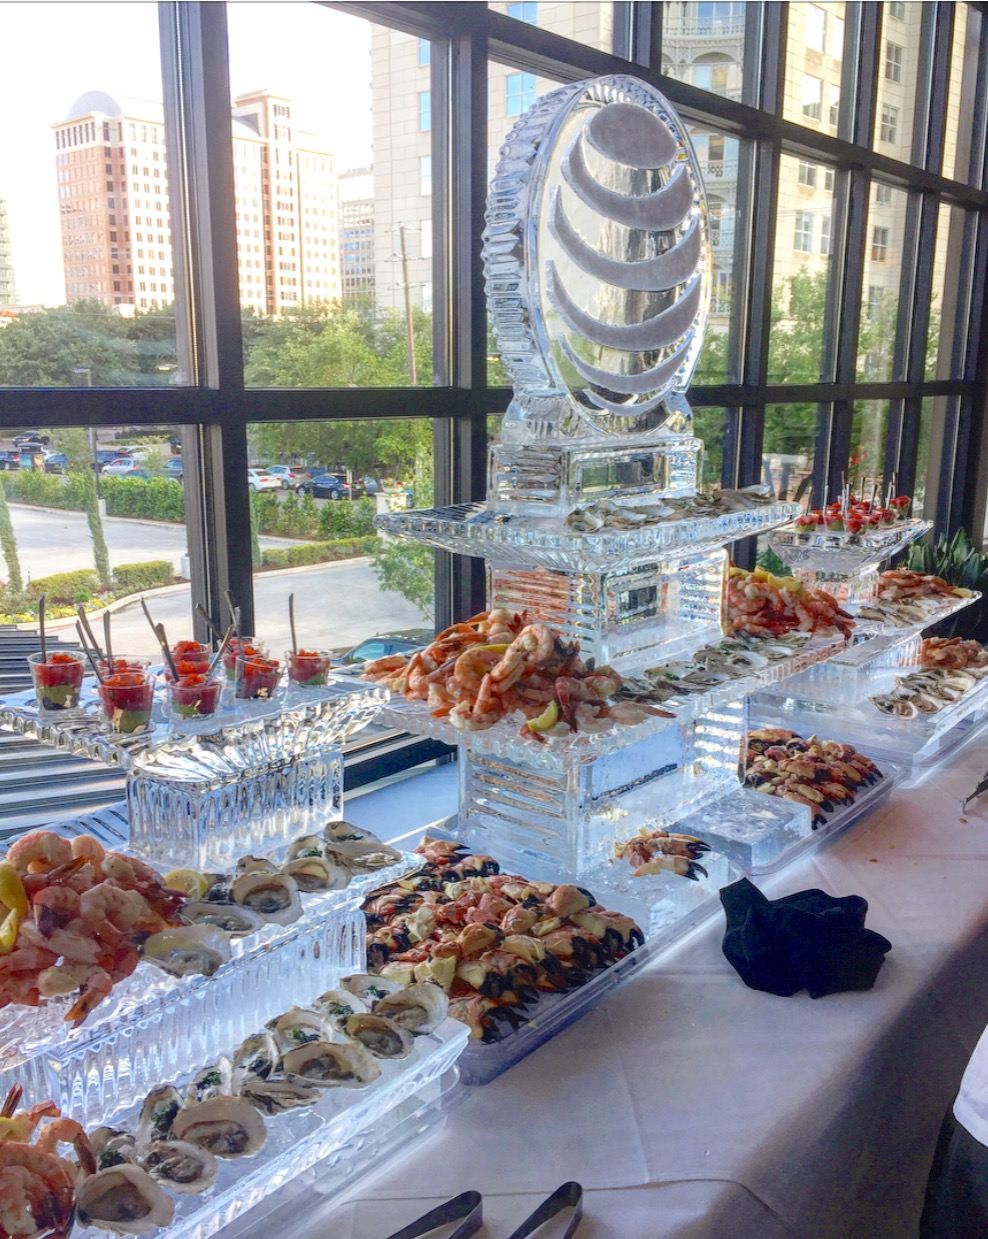 Dallas private event with ice sculpture and chilled seafood display to include ahi tuna, oyster, shrimp cocktail and fresh crab claws